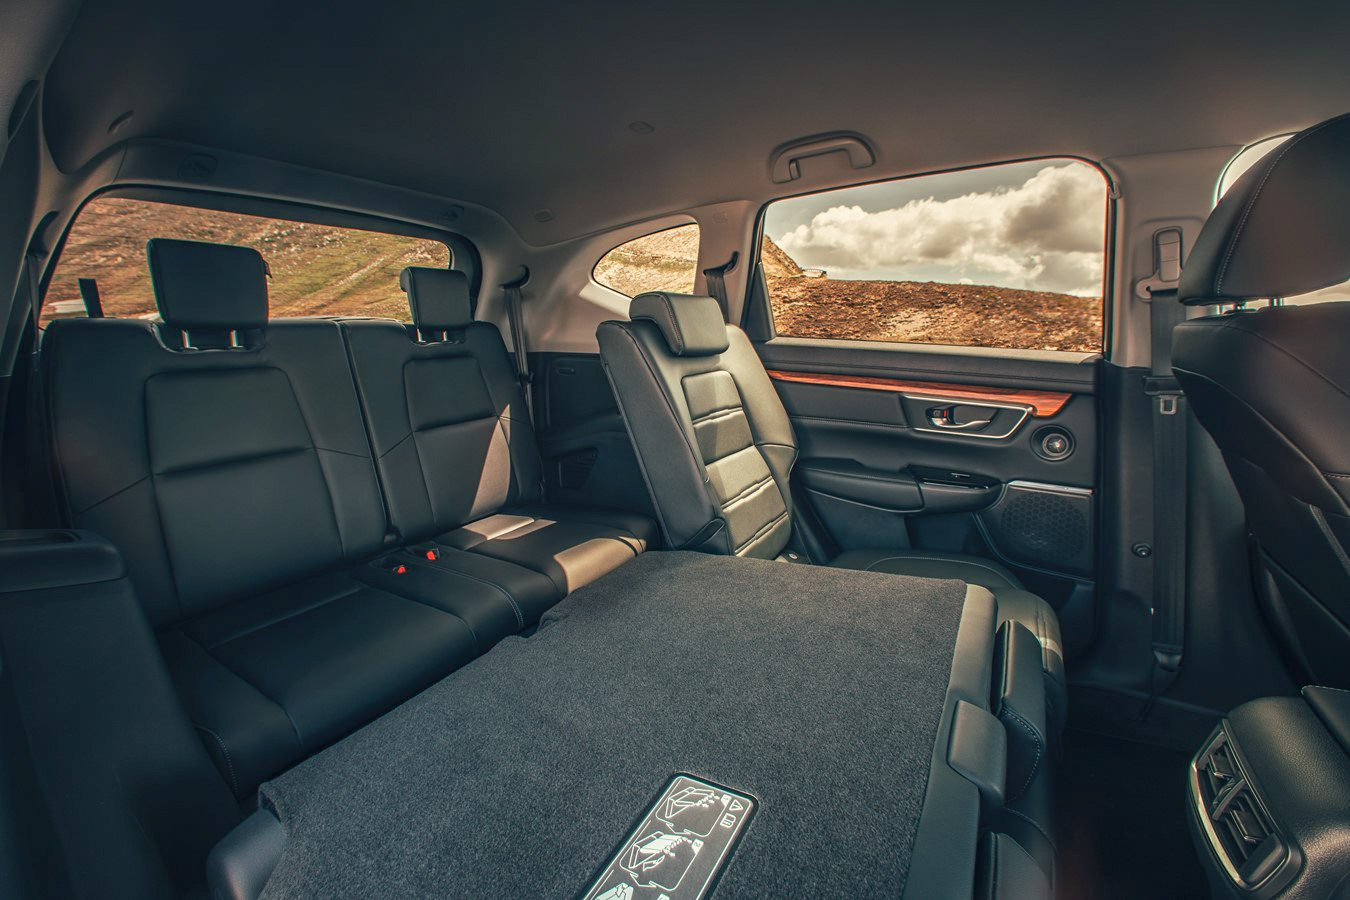 Honda CR-V 2nd row of rear seats, and middle seats